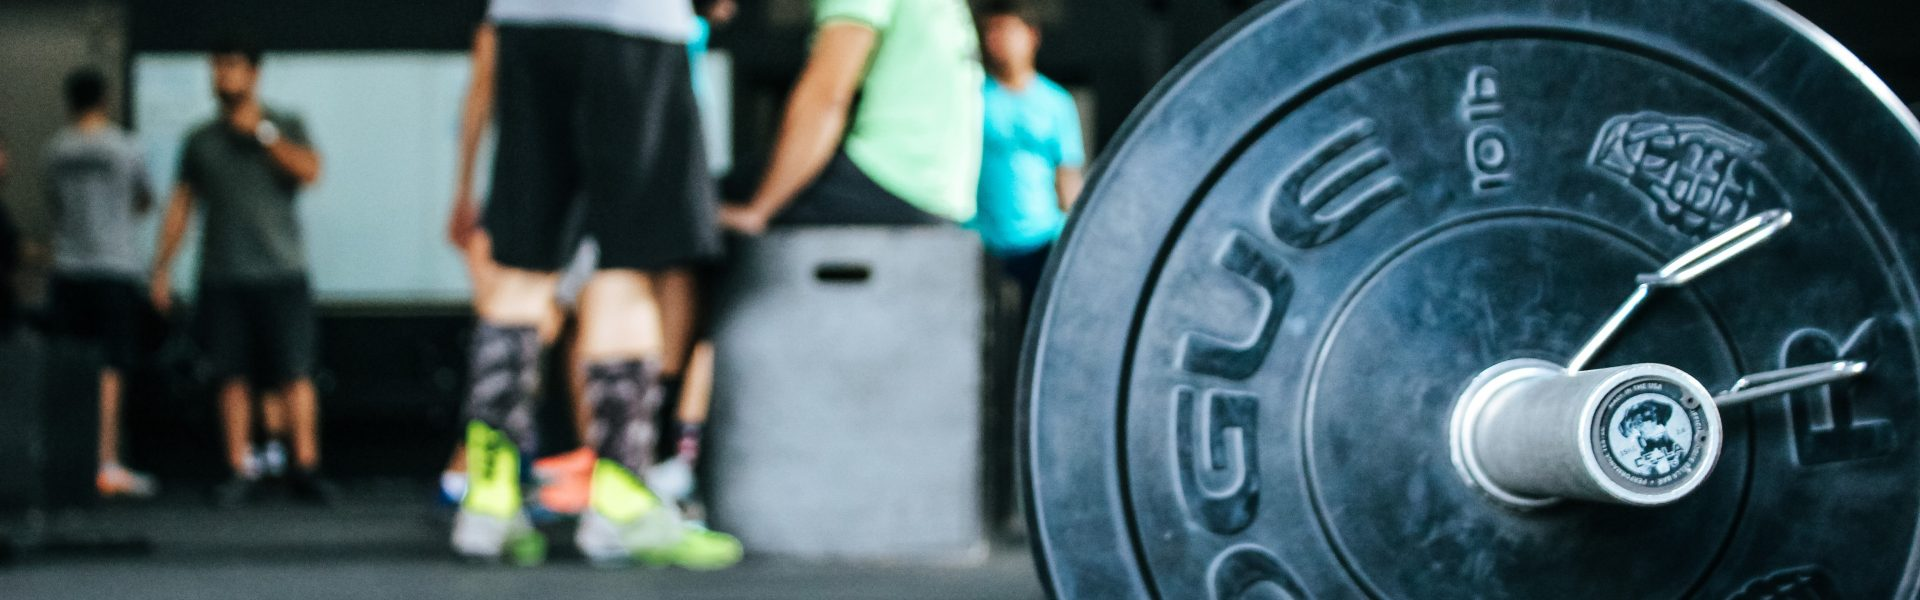 personal trainer giving tips